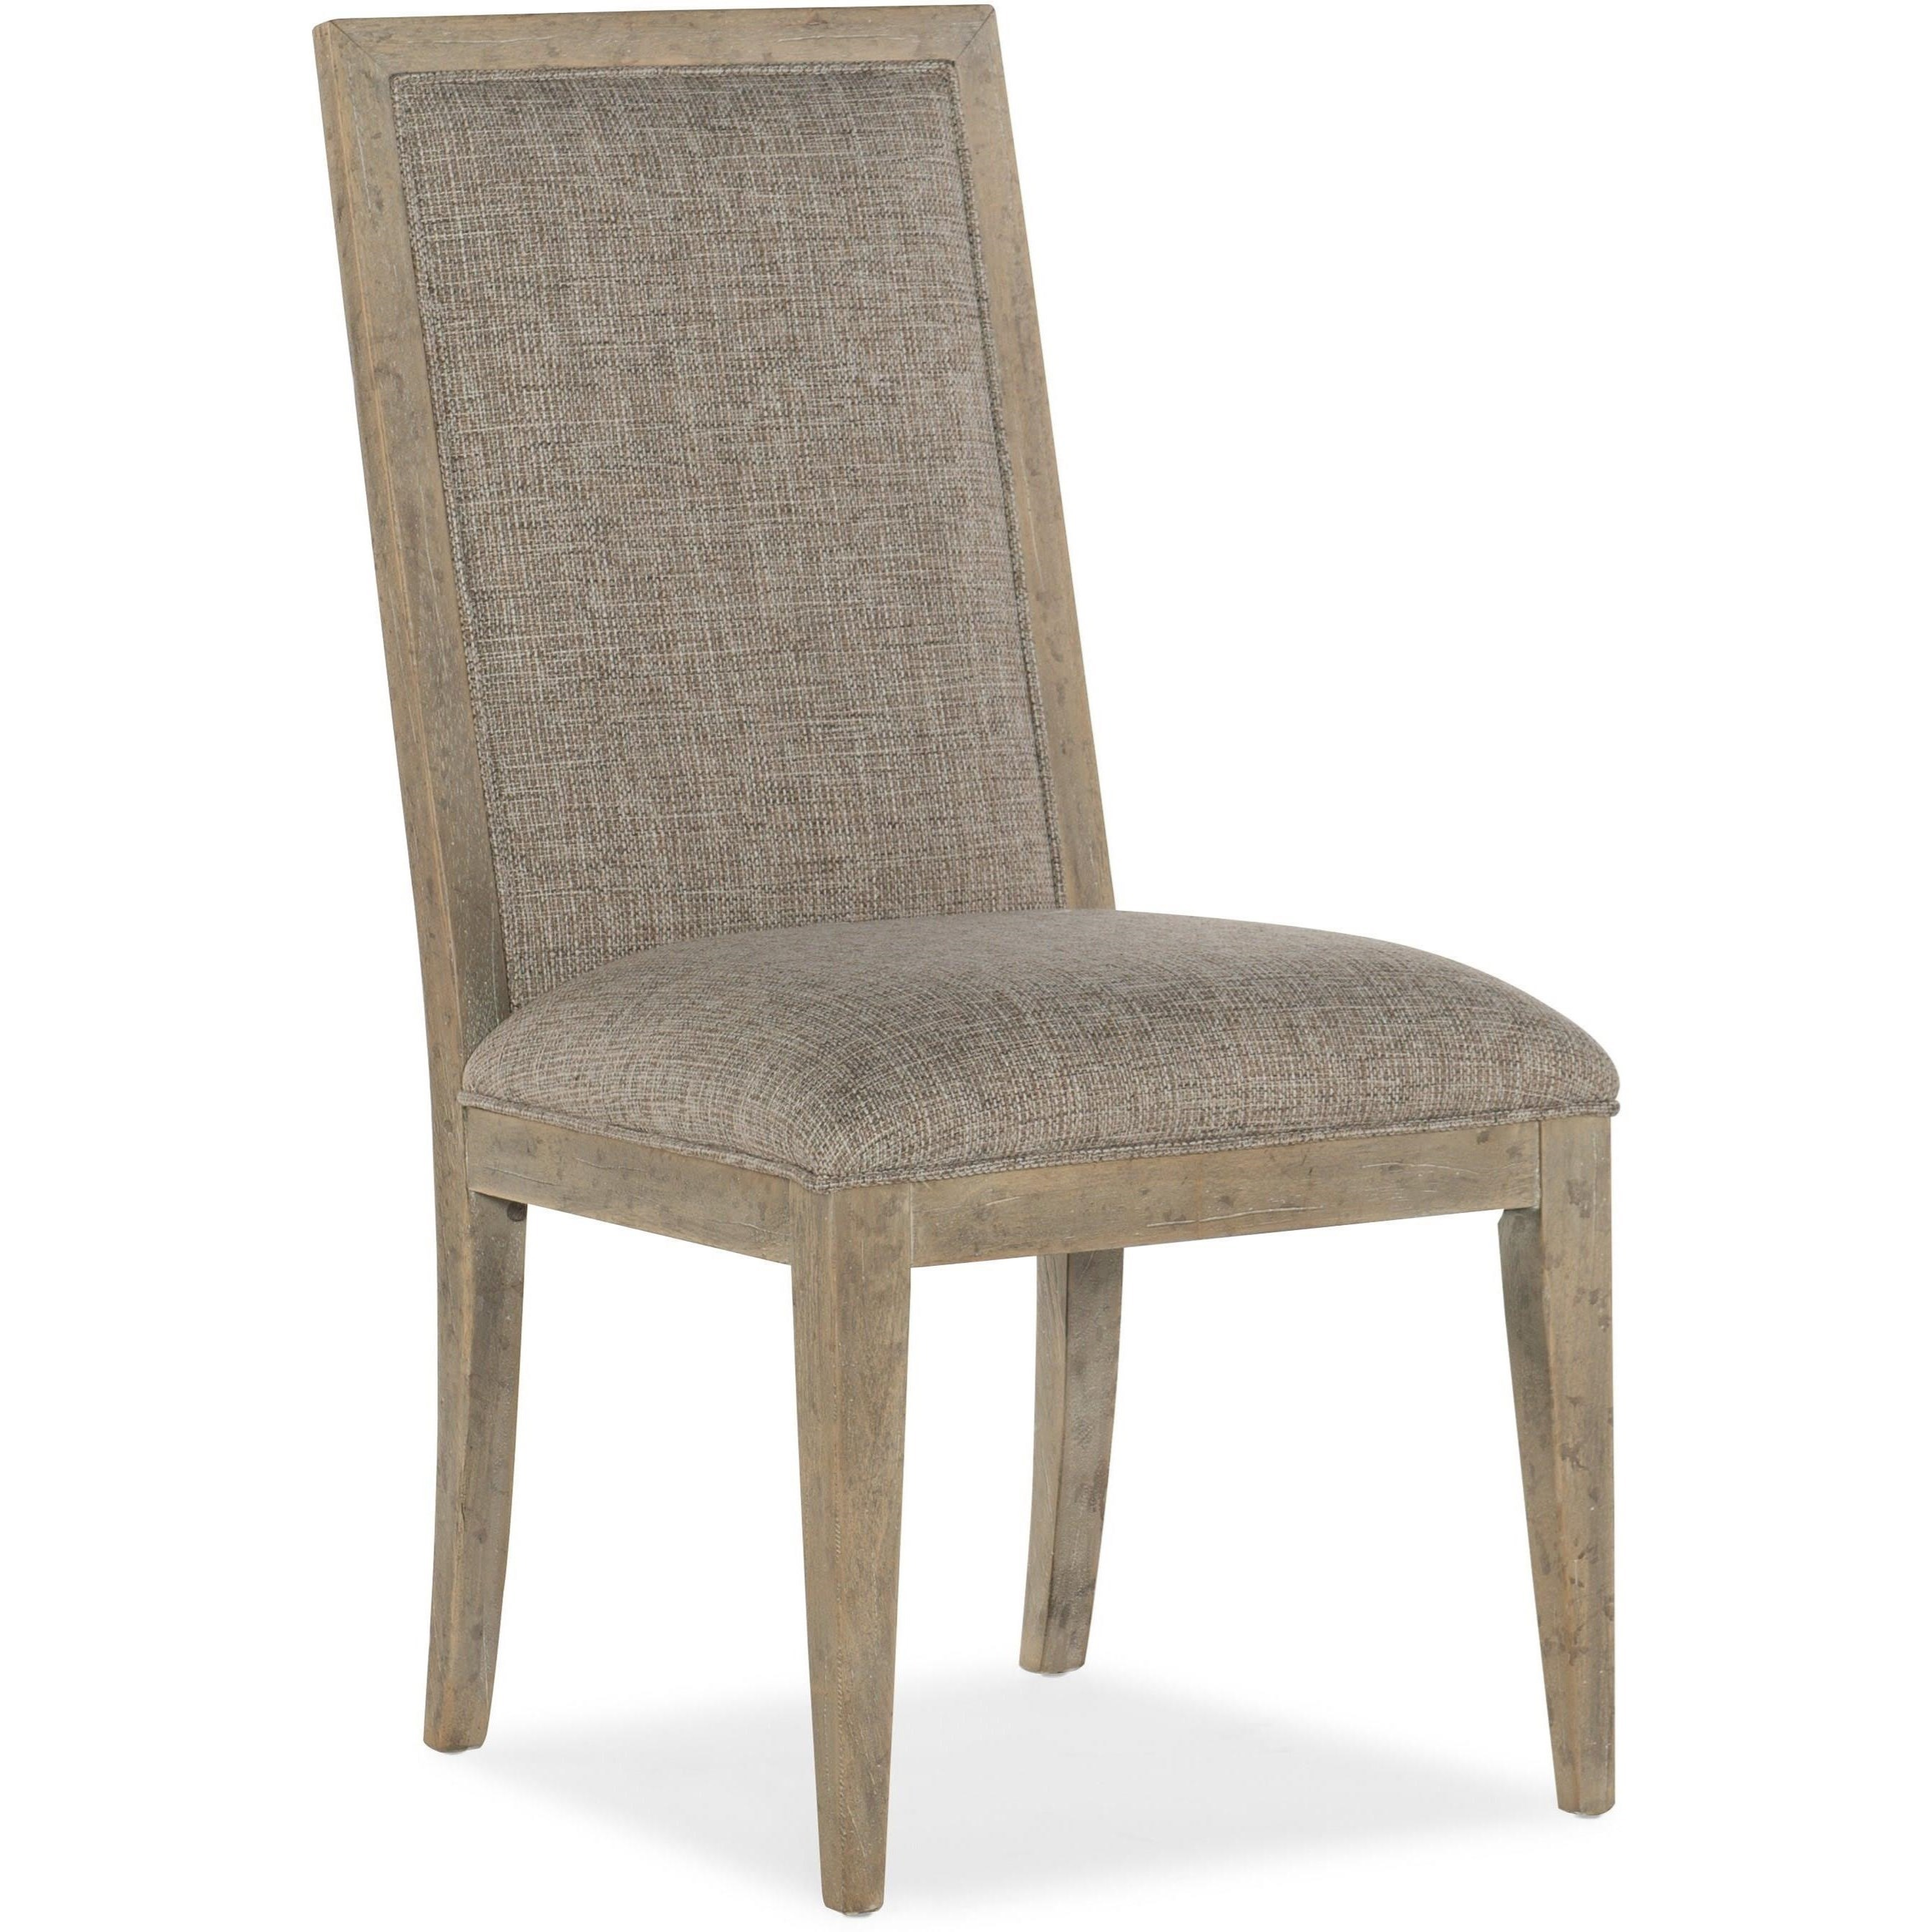 American Life-Amani Upholstered Side Chair by Hooker Furniture at Miller Waldrop Furniture and Decor